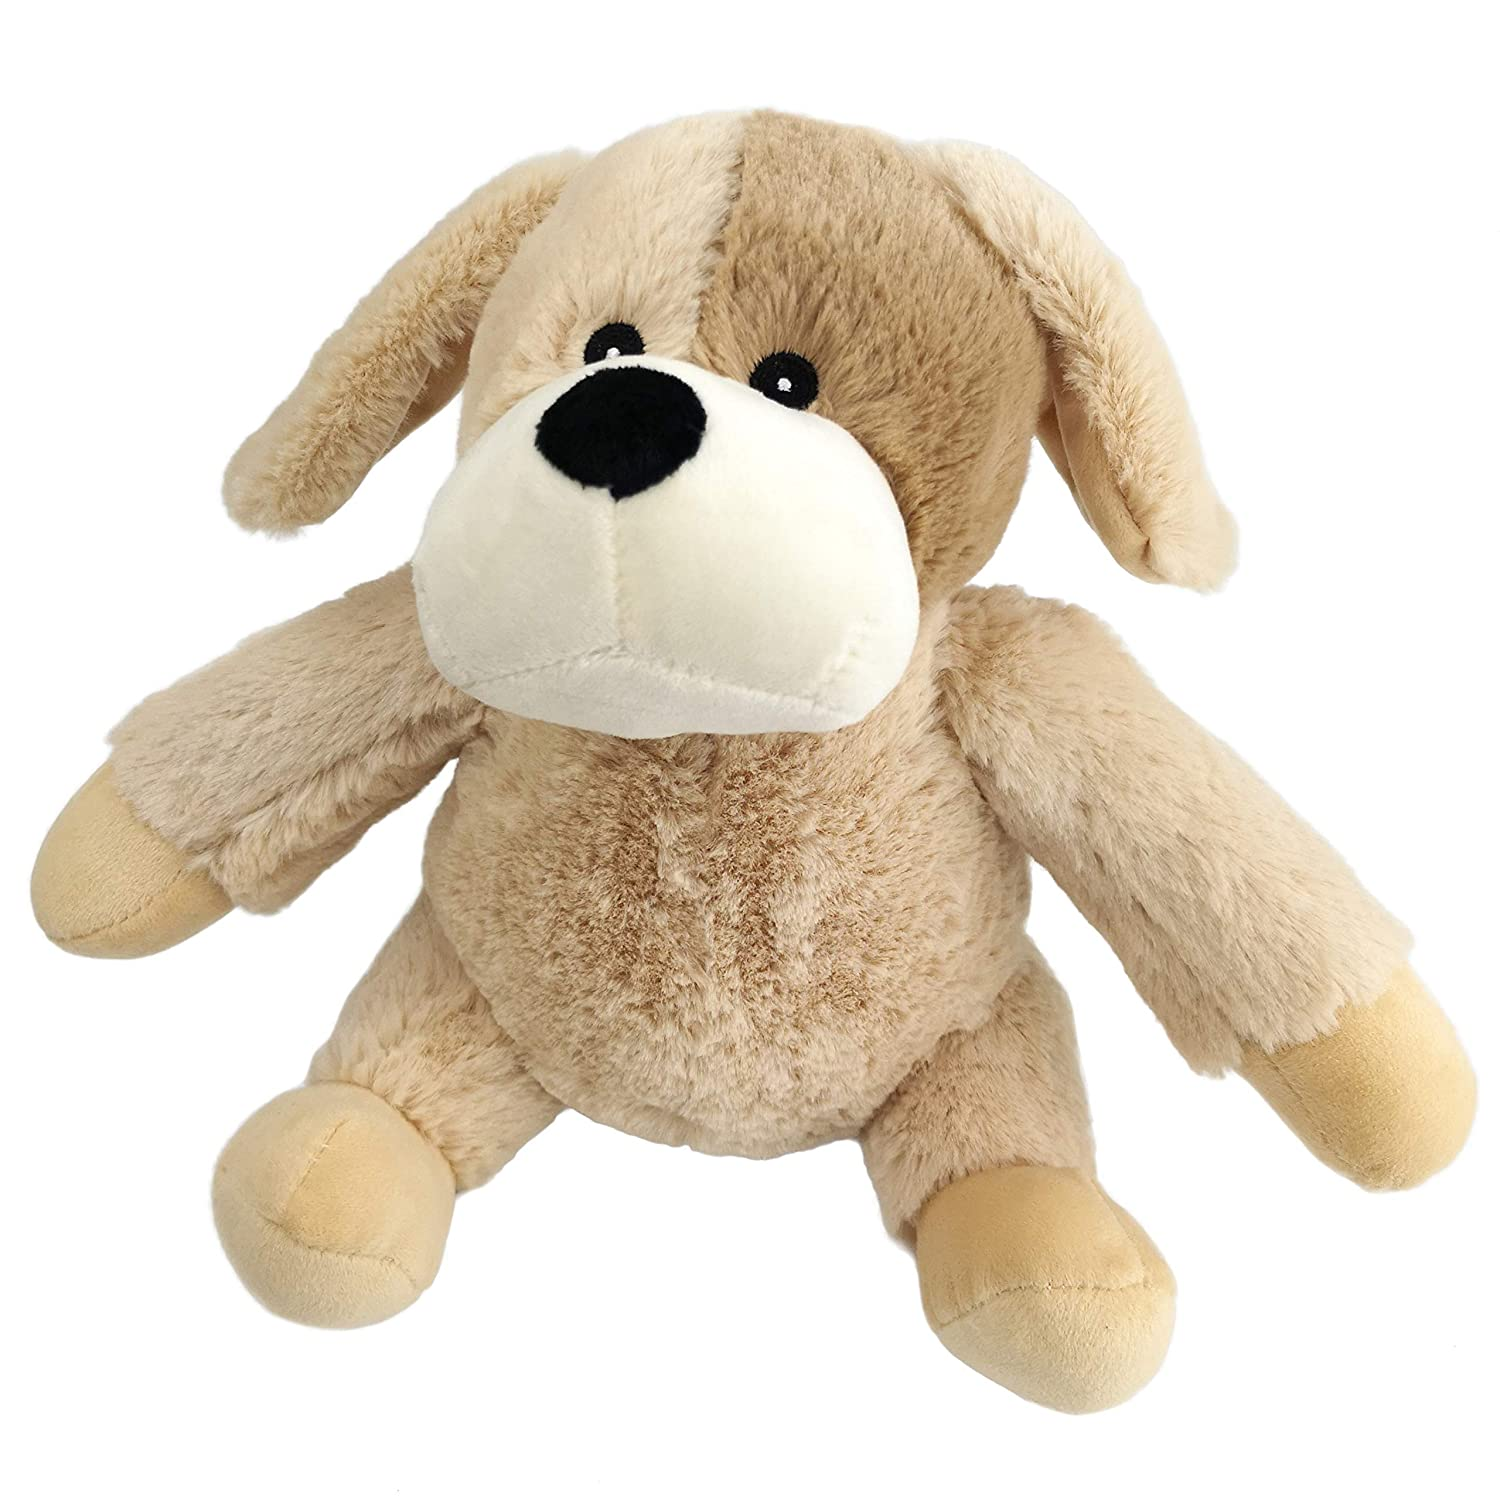 f0505b933d43 Amazon.com: Bstaofy Microwavable Plush Puppy Heatable Pal Stuffed Animal  Cozy Hot&Cold Therapy, Light Brown (Puppy): Toys & Games